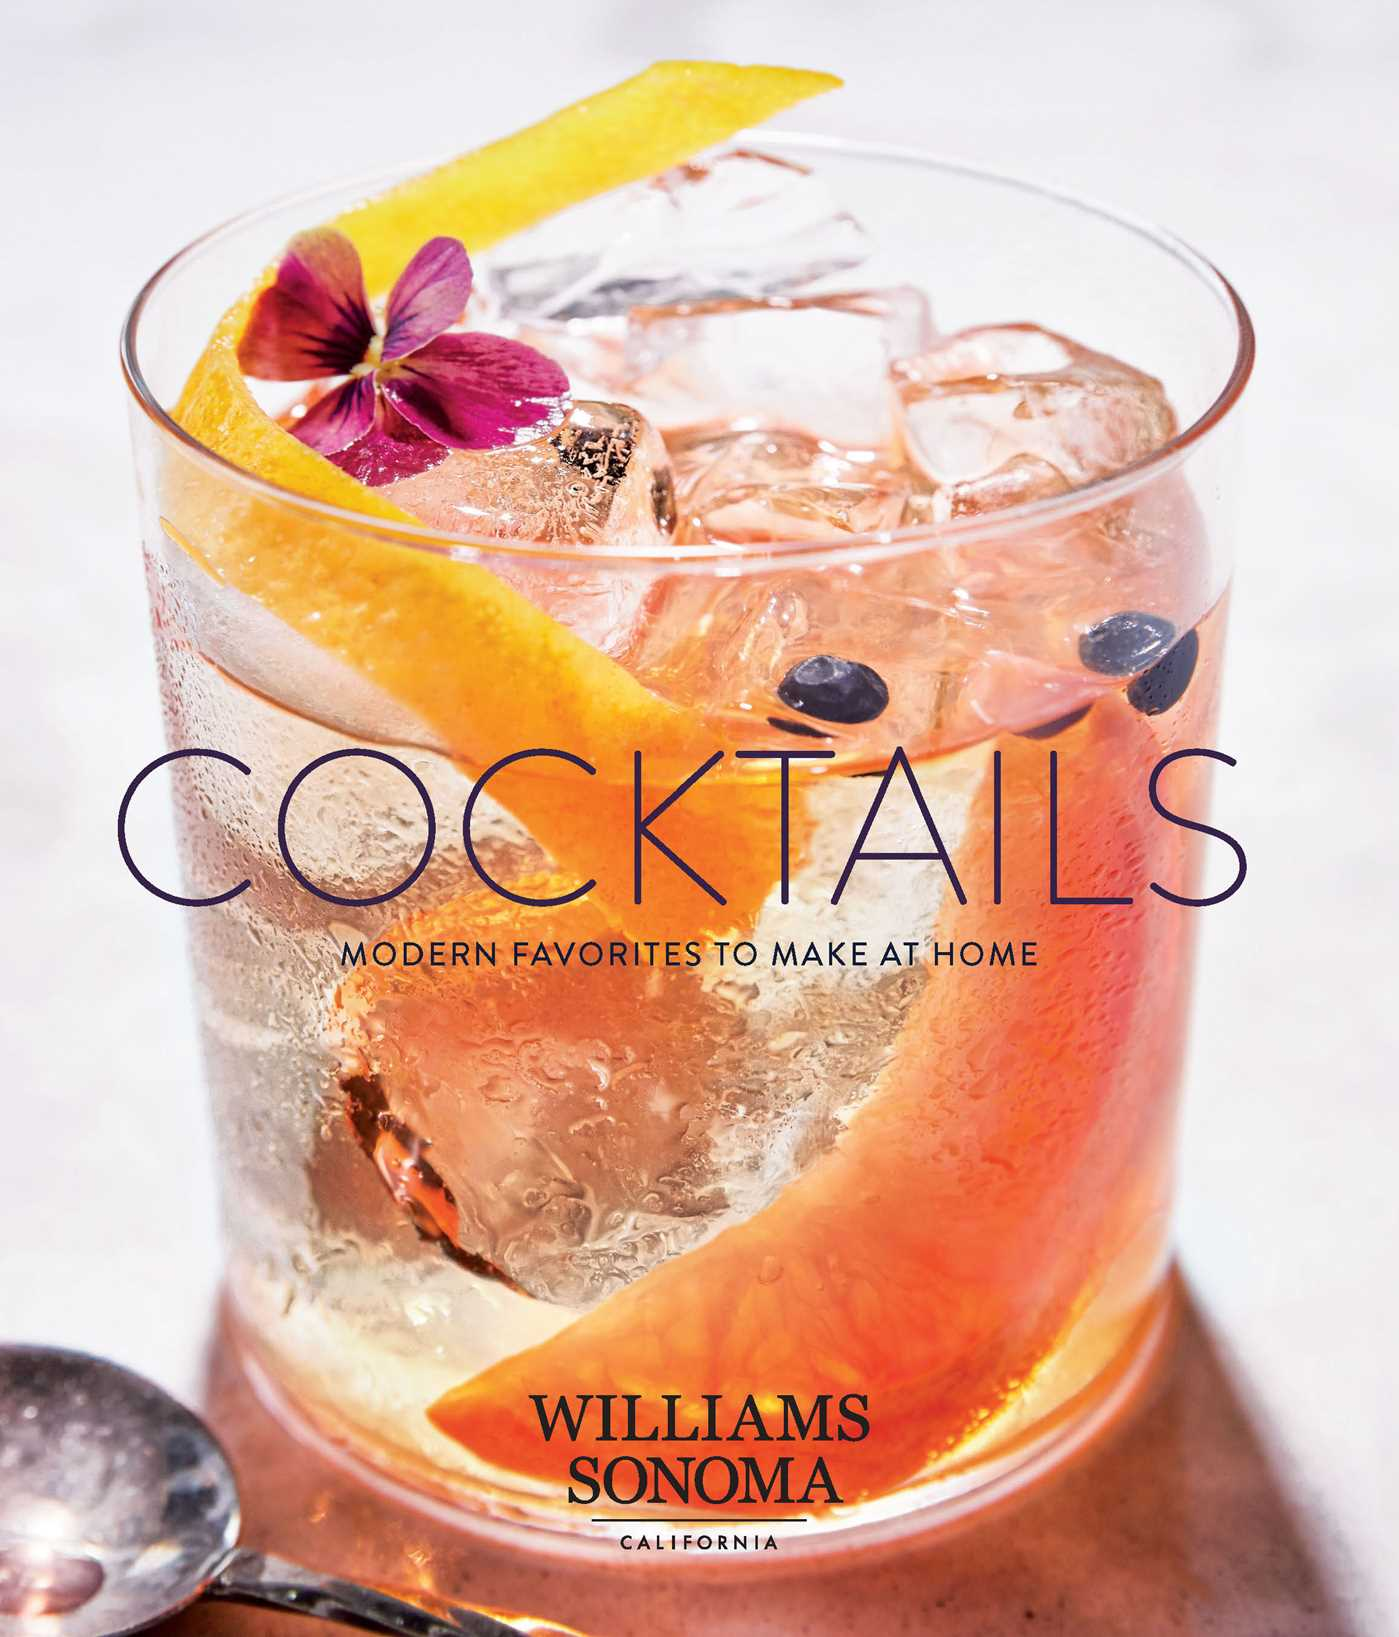 Cocktails 9781681882680 hr